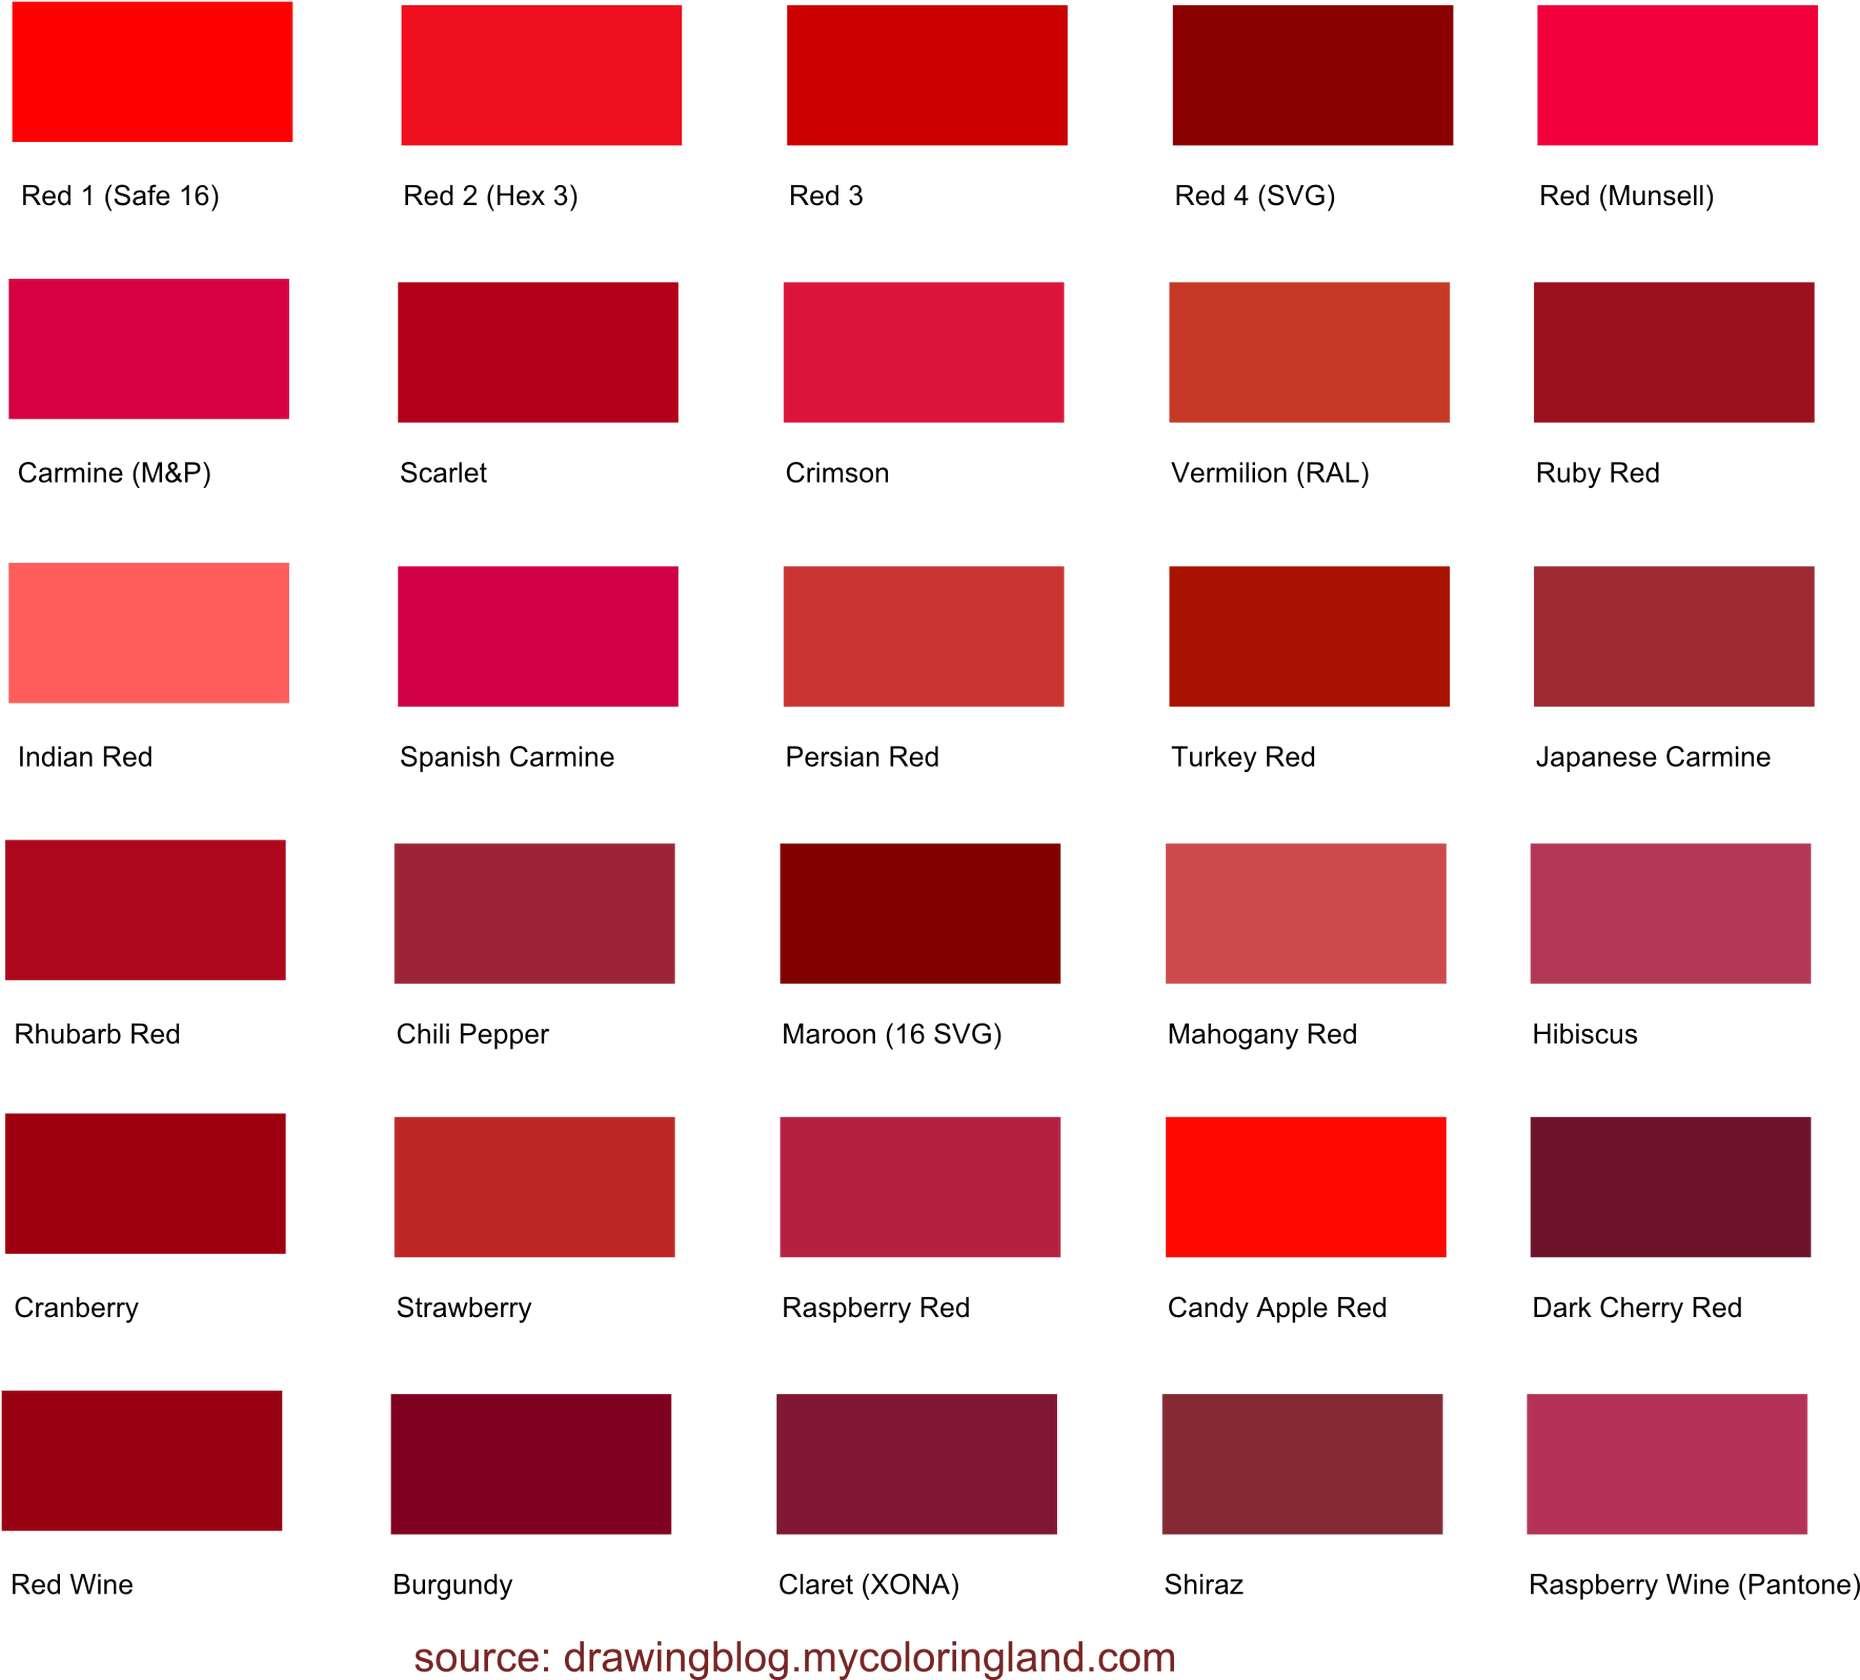 Ford Paint Color Chart >> How Many Different Shades of Red Color are There? - Drawing Blog